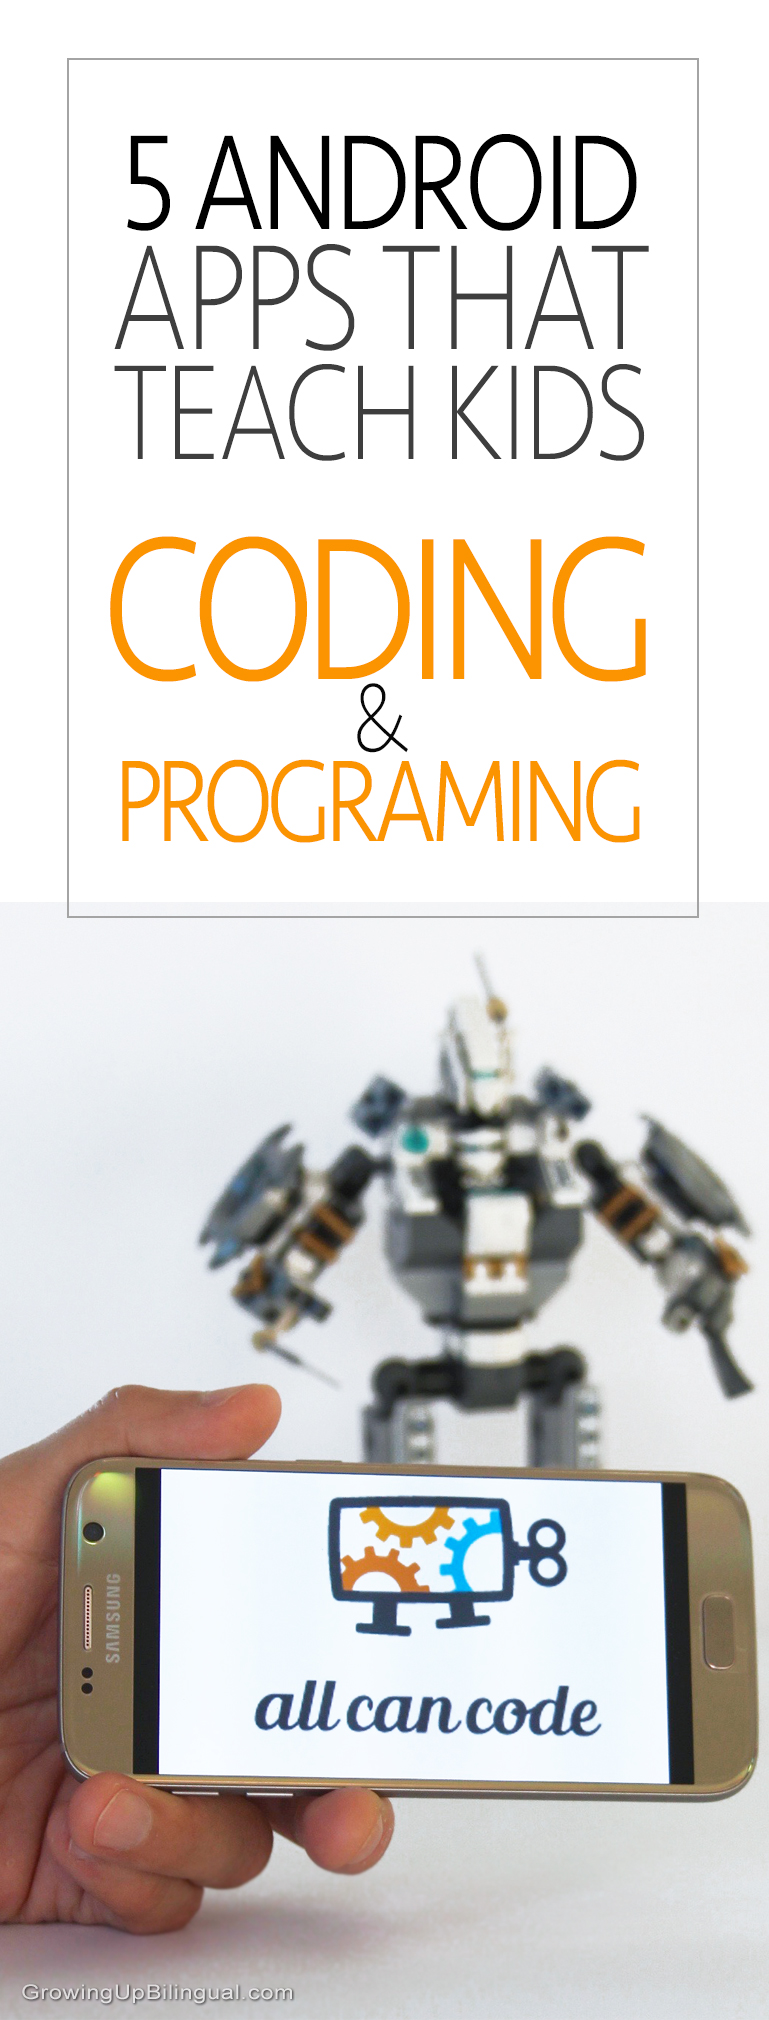 5 Android Apps That Teach Kids Coding and Programing